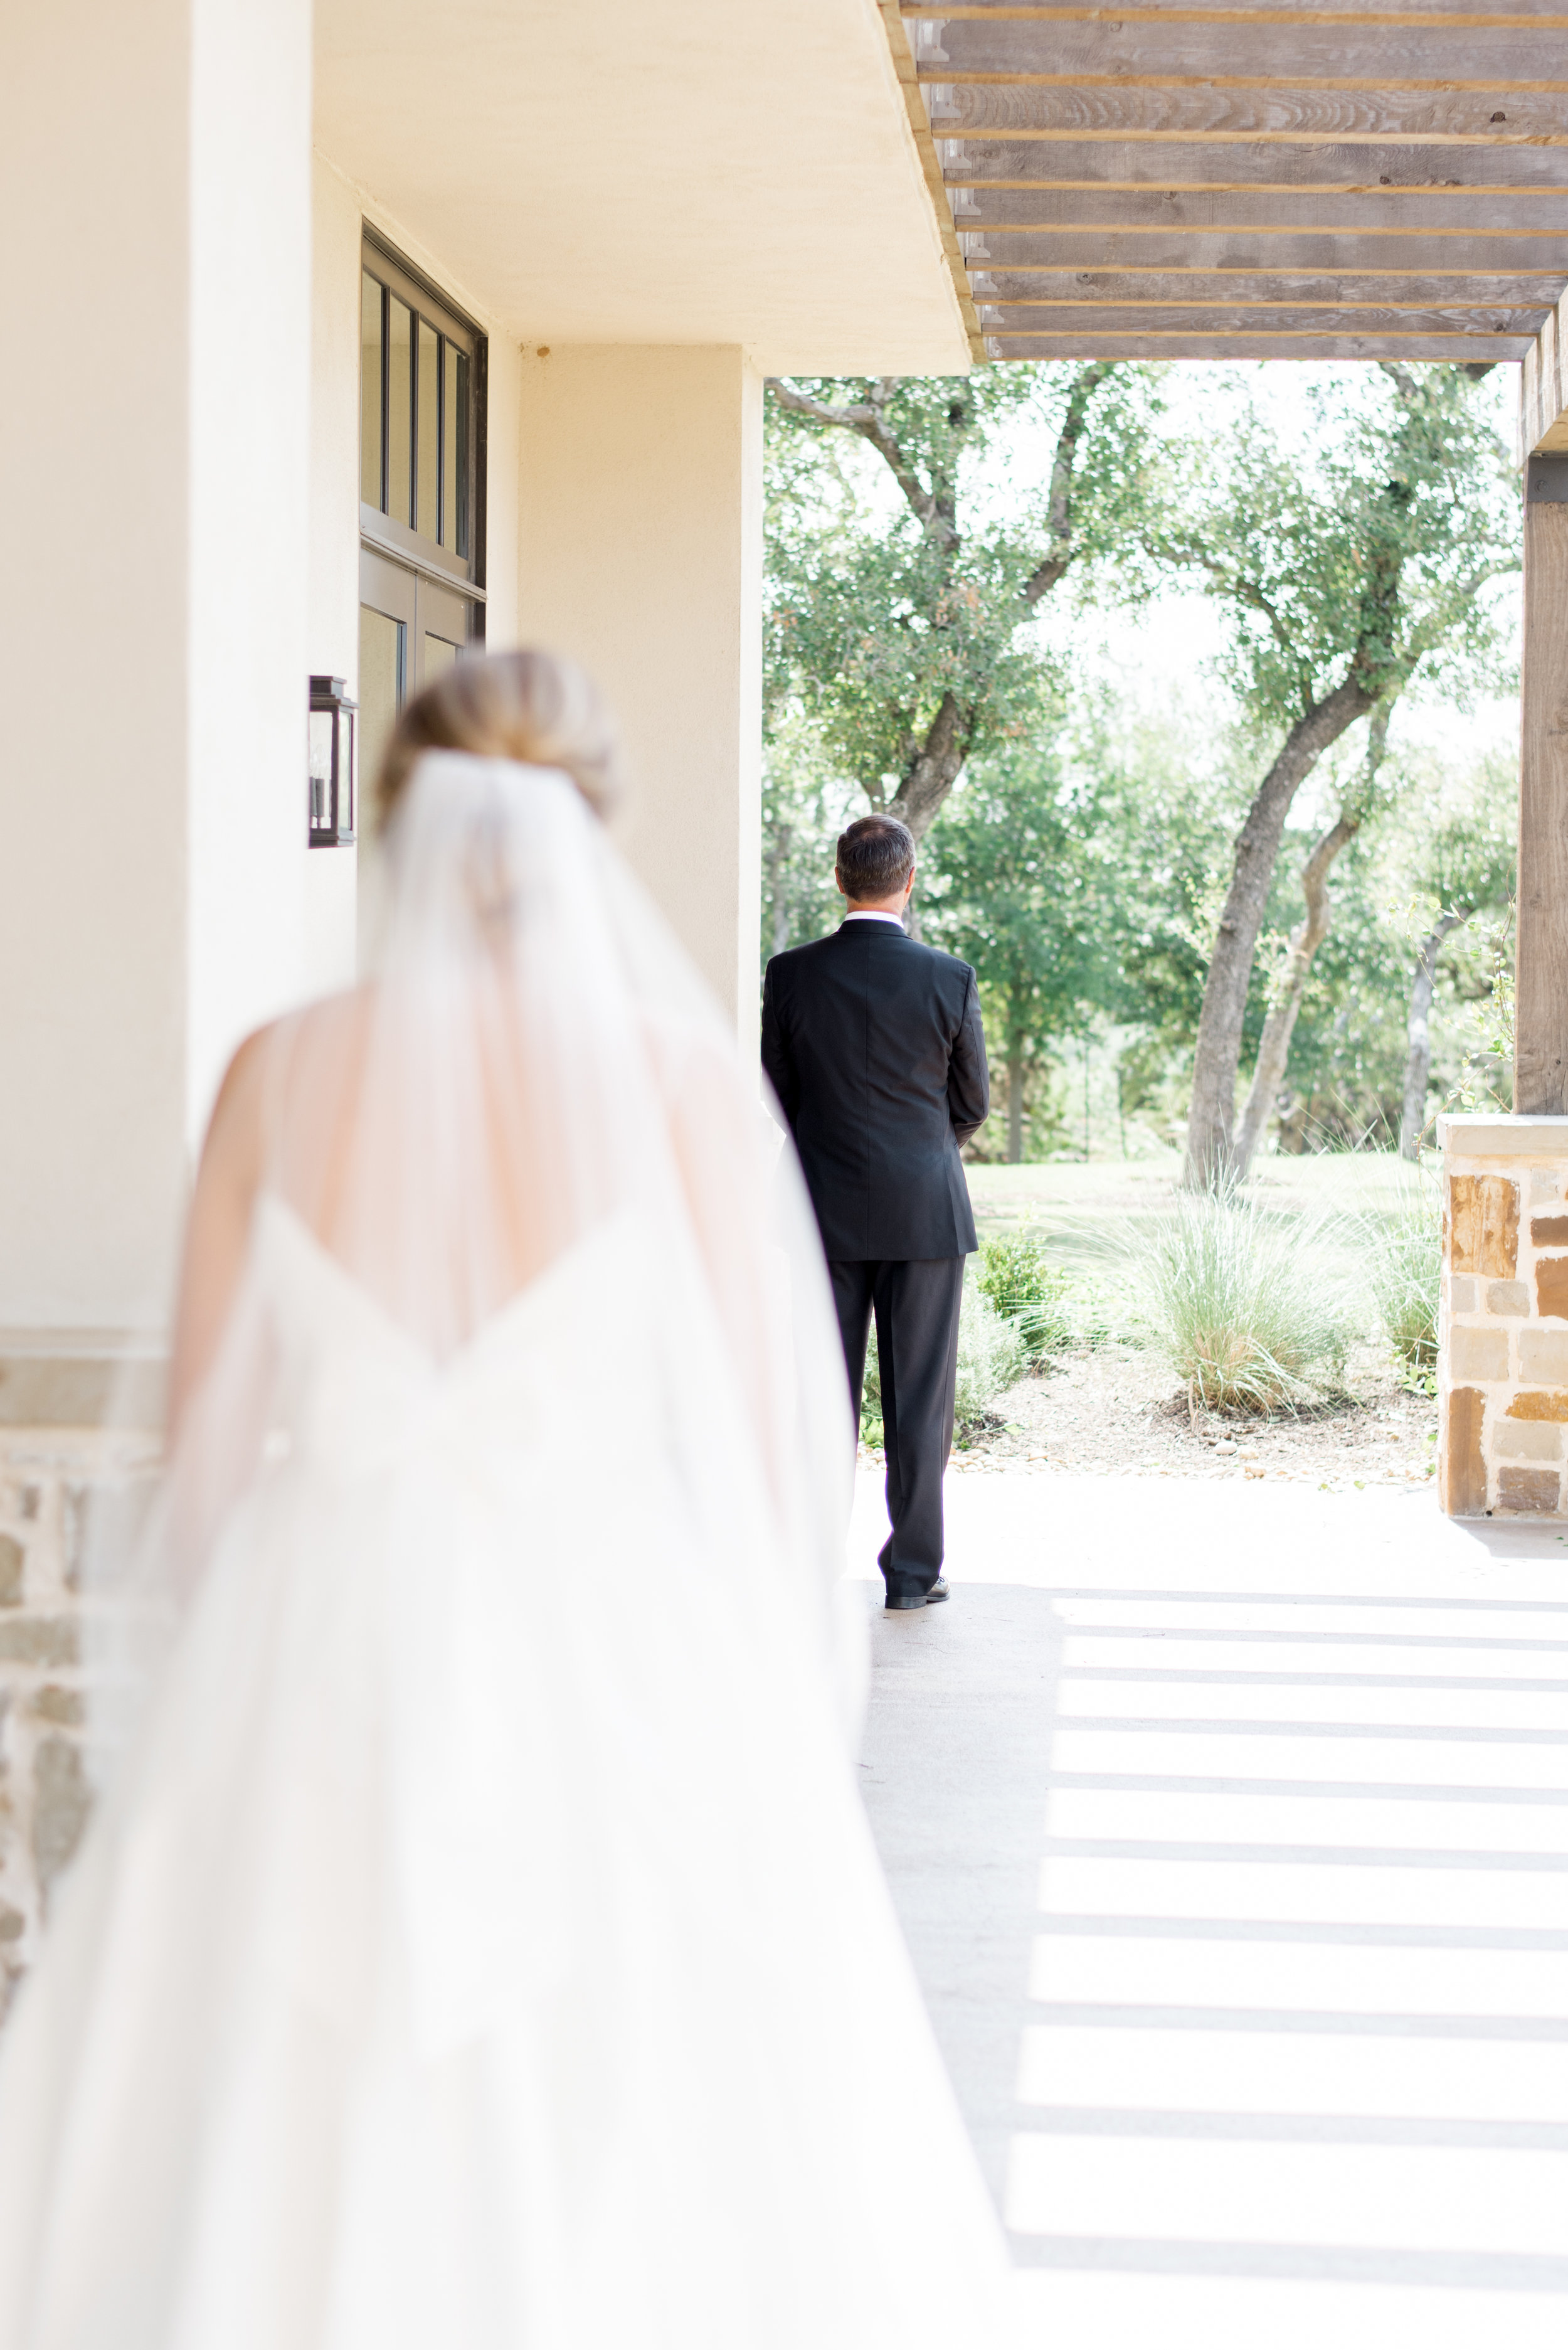 first look with dad wedding day canyonwood ridge austin wedding venue + planner coordinator epoch co + erin elizabeth photography